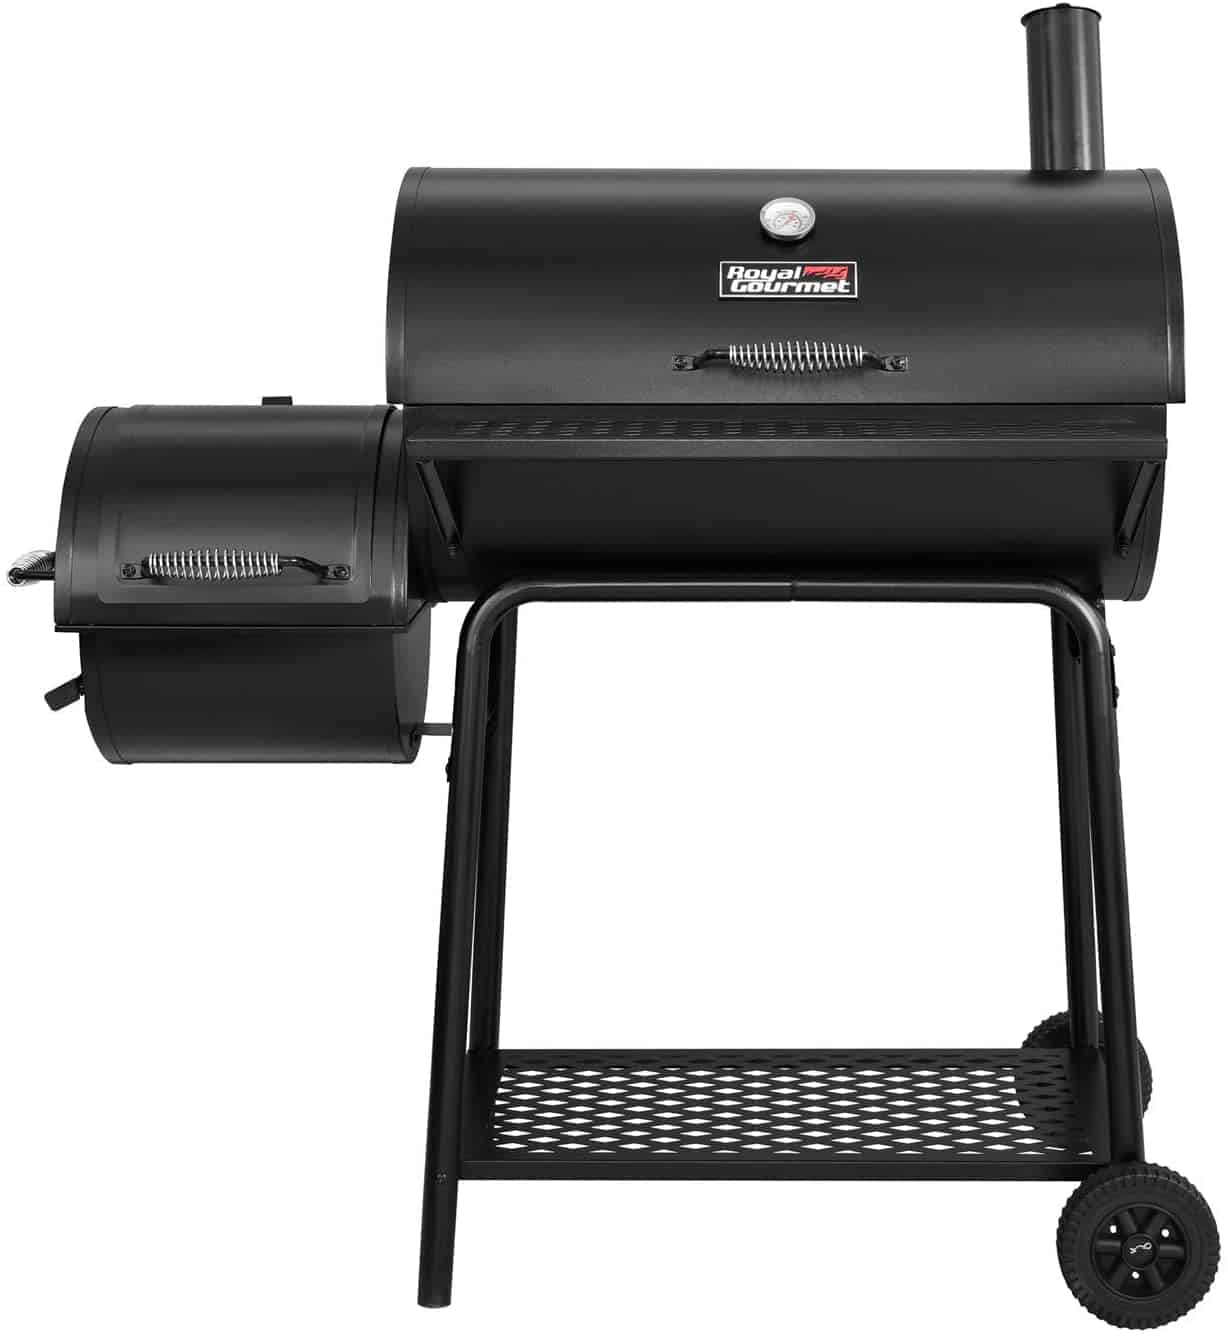 Best cheap budget smoker for beginners: Royal Gourmet Charcoal Grill